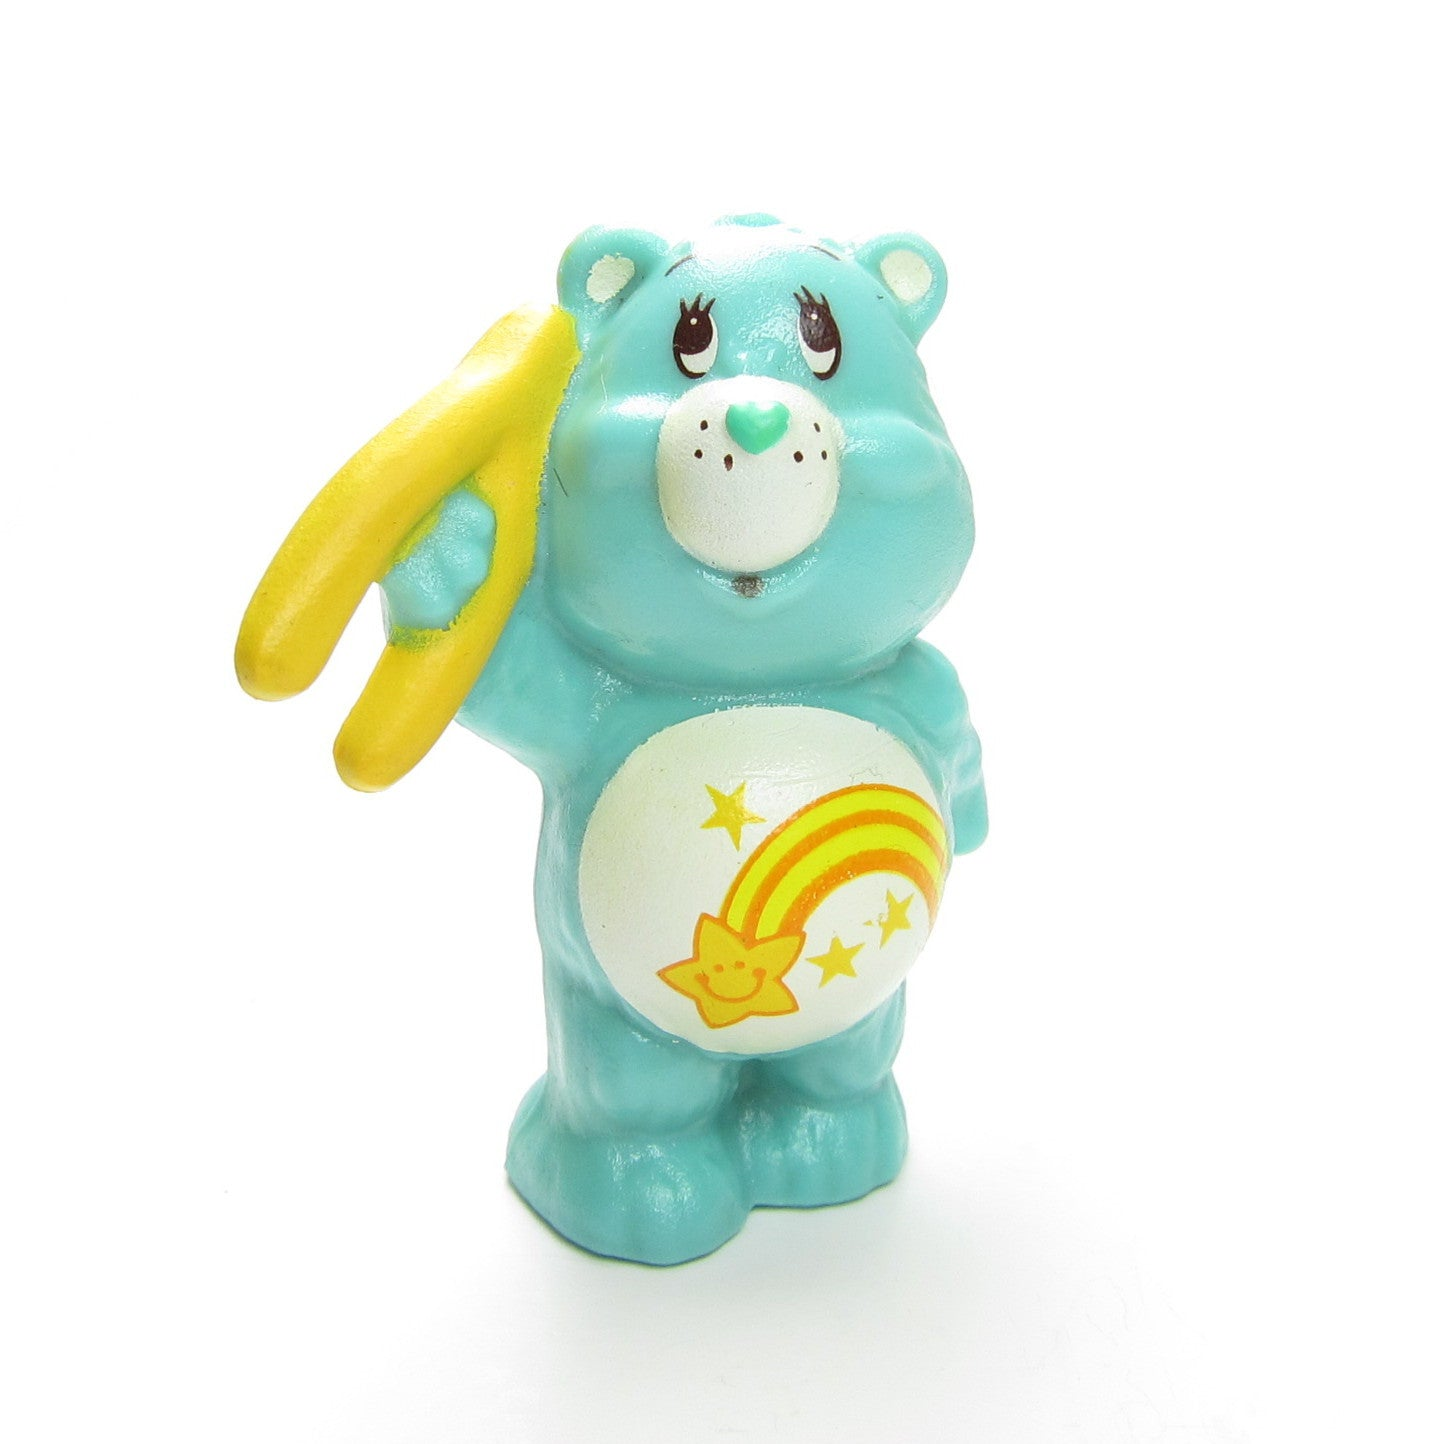 Wish Bear Holding a Wishbone miniature figurine